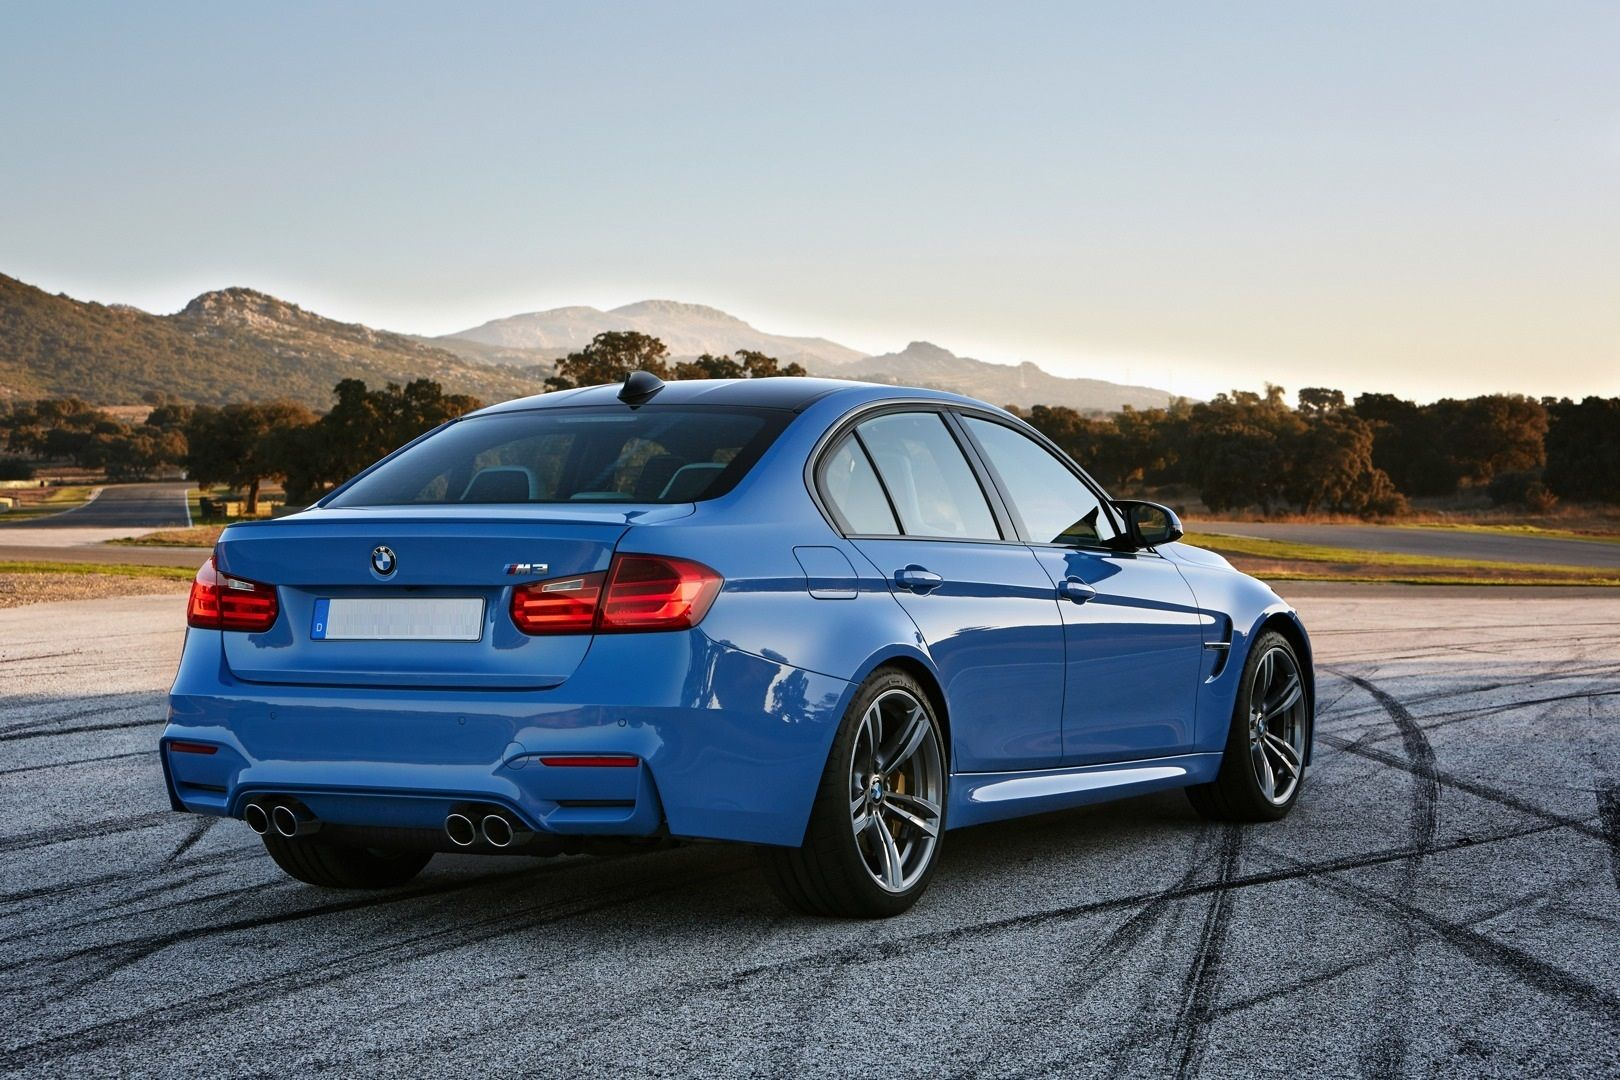 Bmw M3 Wallpaper 1680×1050 Bmw M3 Wallpaper 1920×1080 More | Places To  Visit | Pinterest | Bmw M3 Wallpaper, BMW And BMW M3